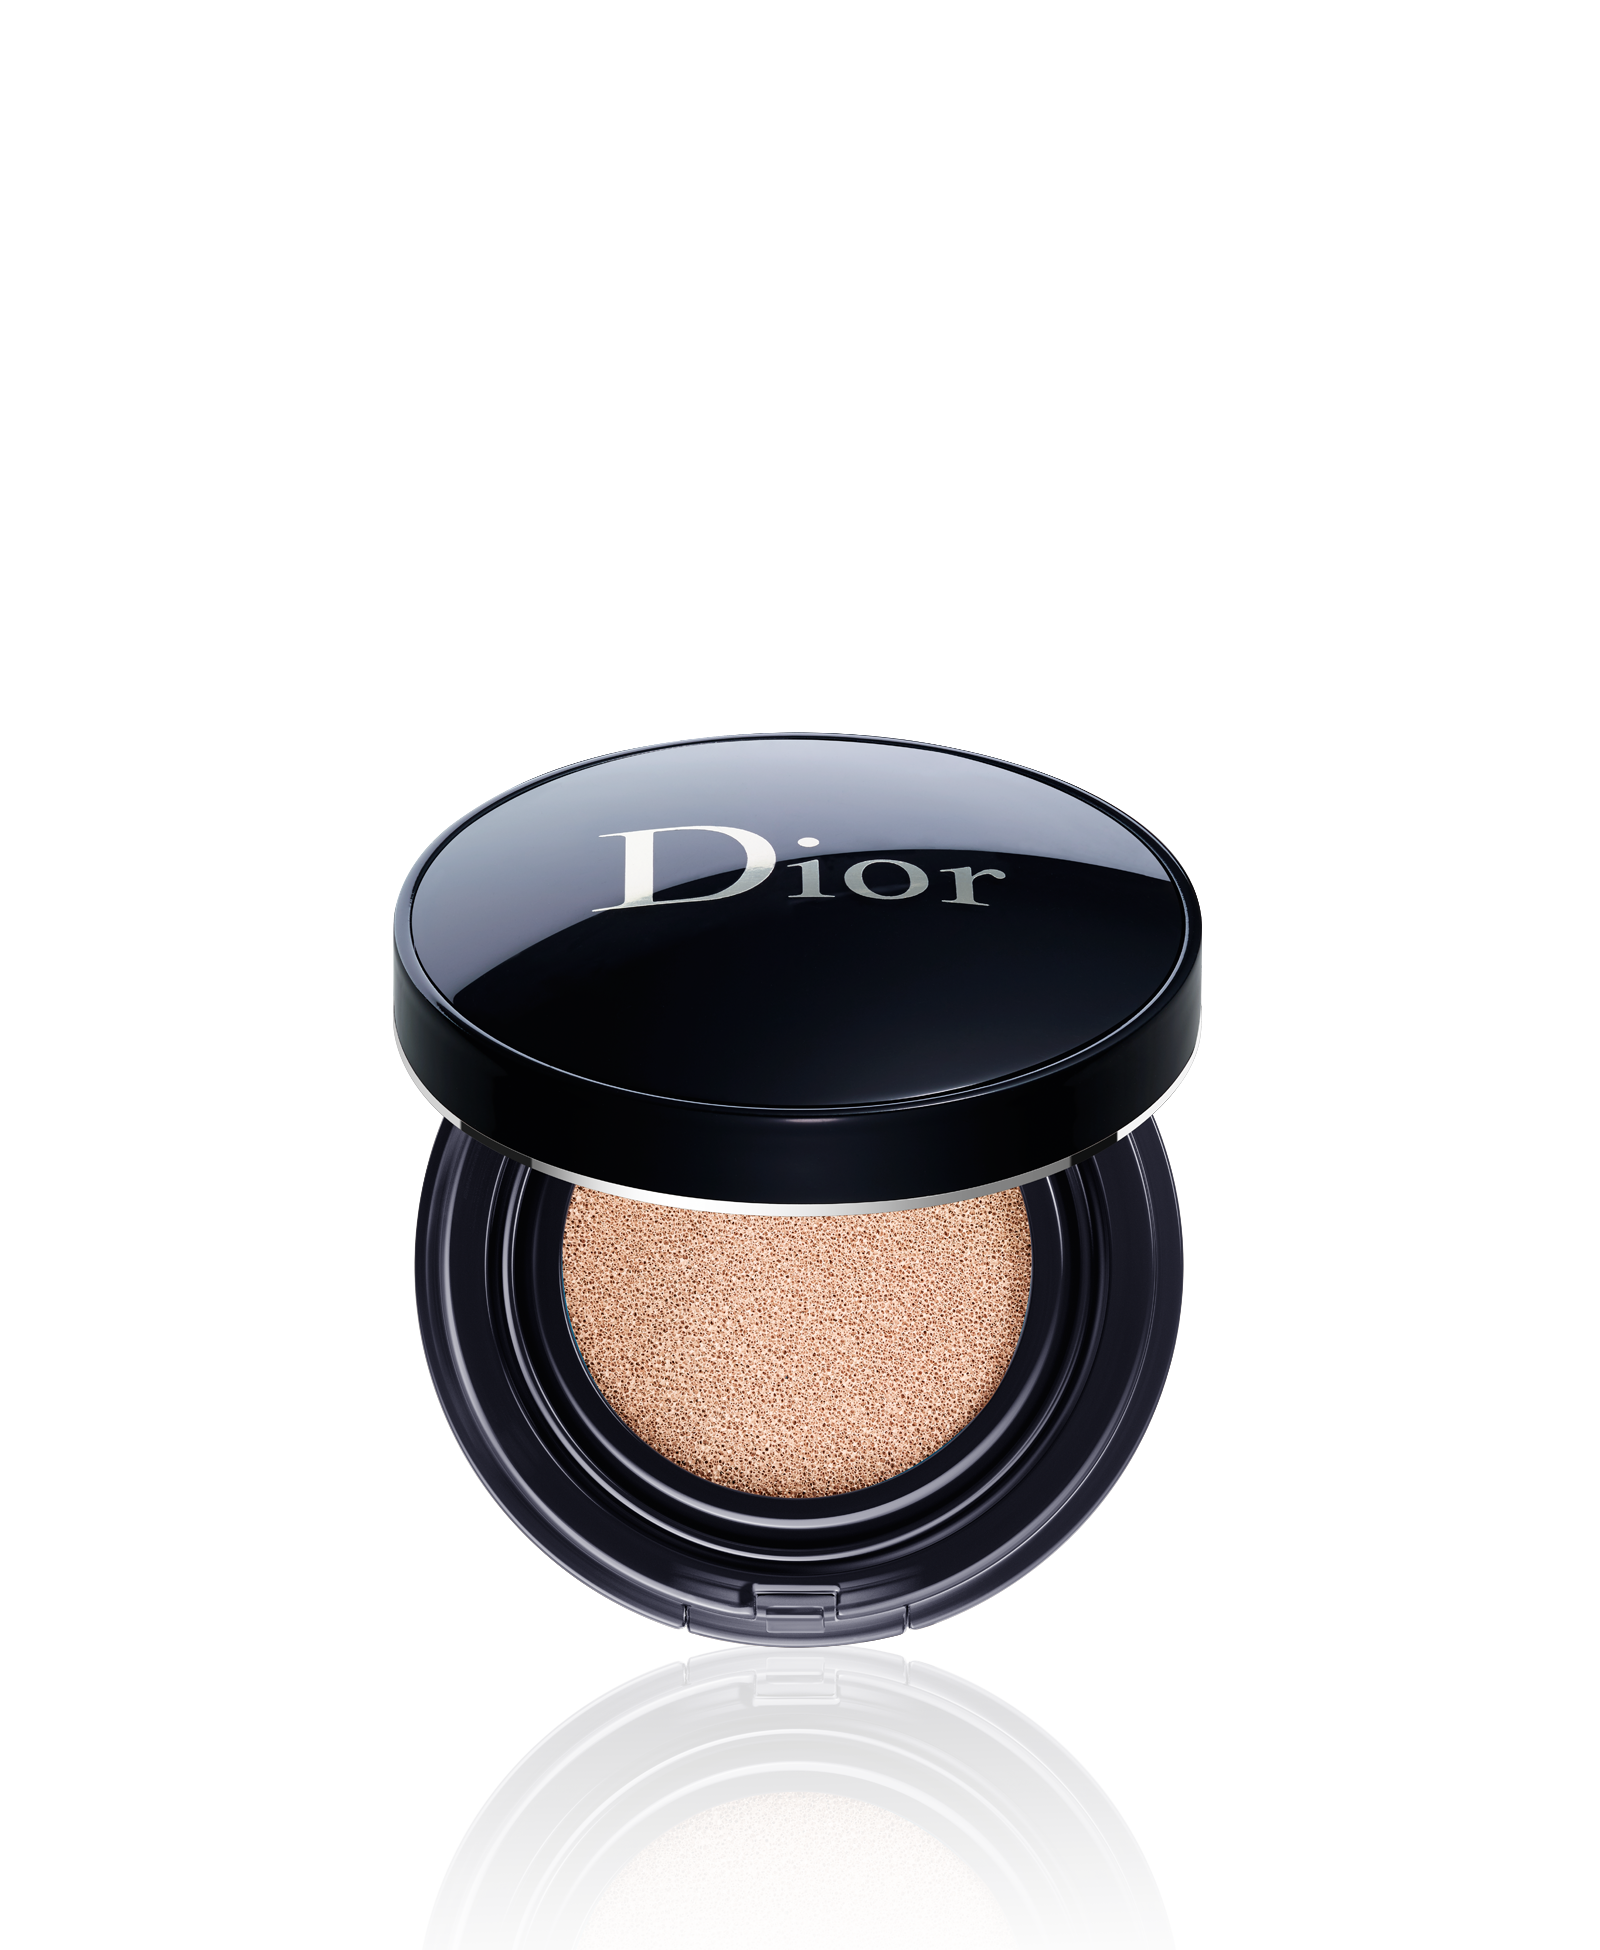 Discover Diorskin Forever Perfect Cushion by Christian